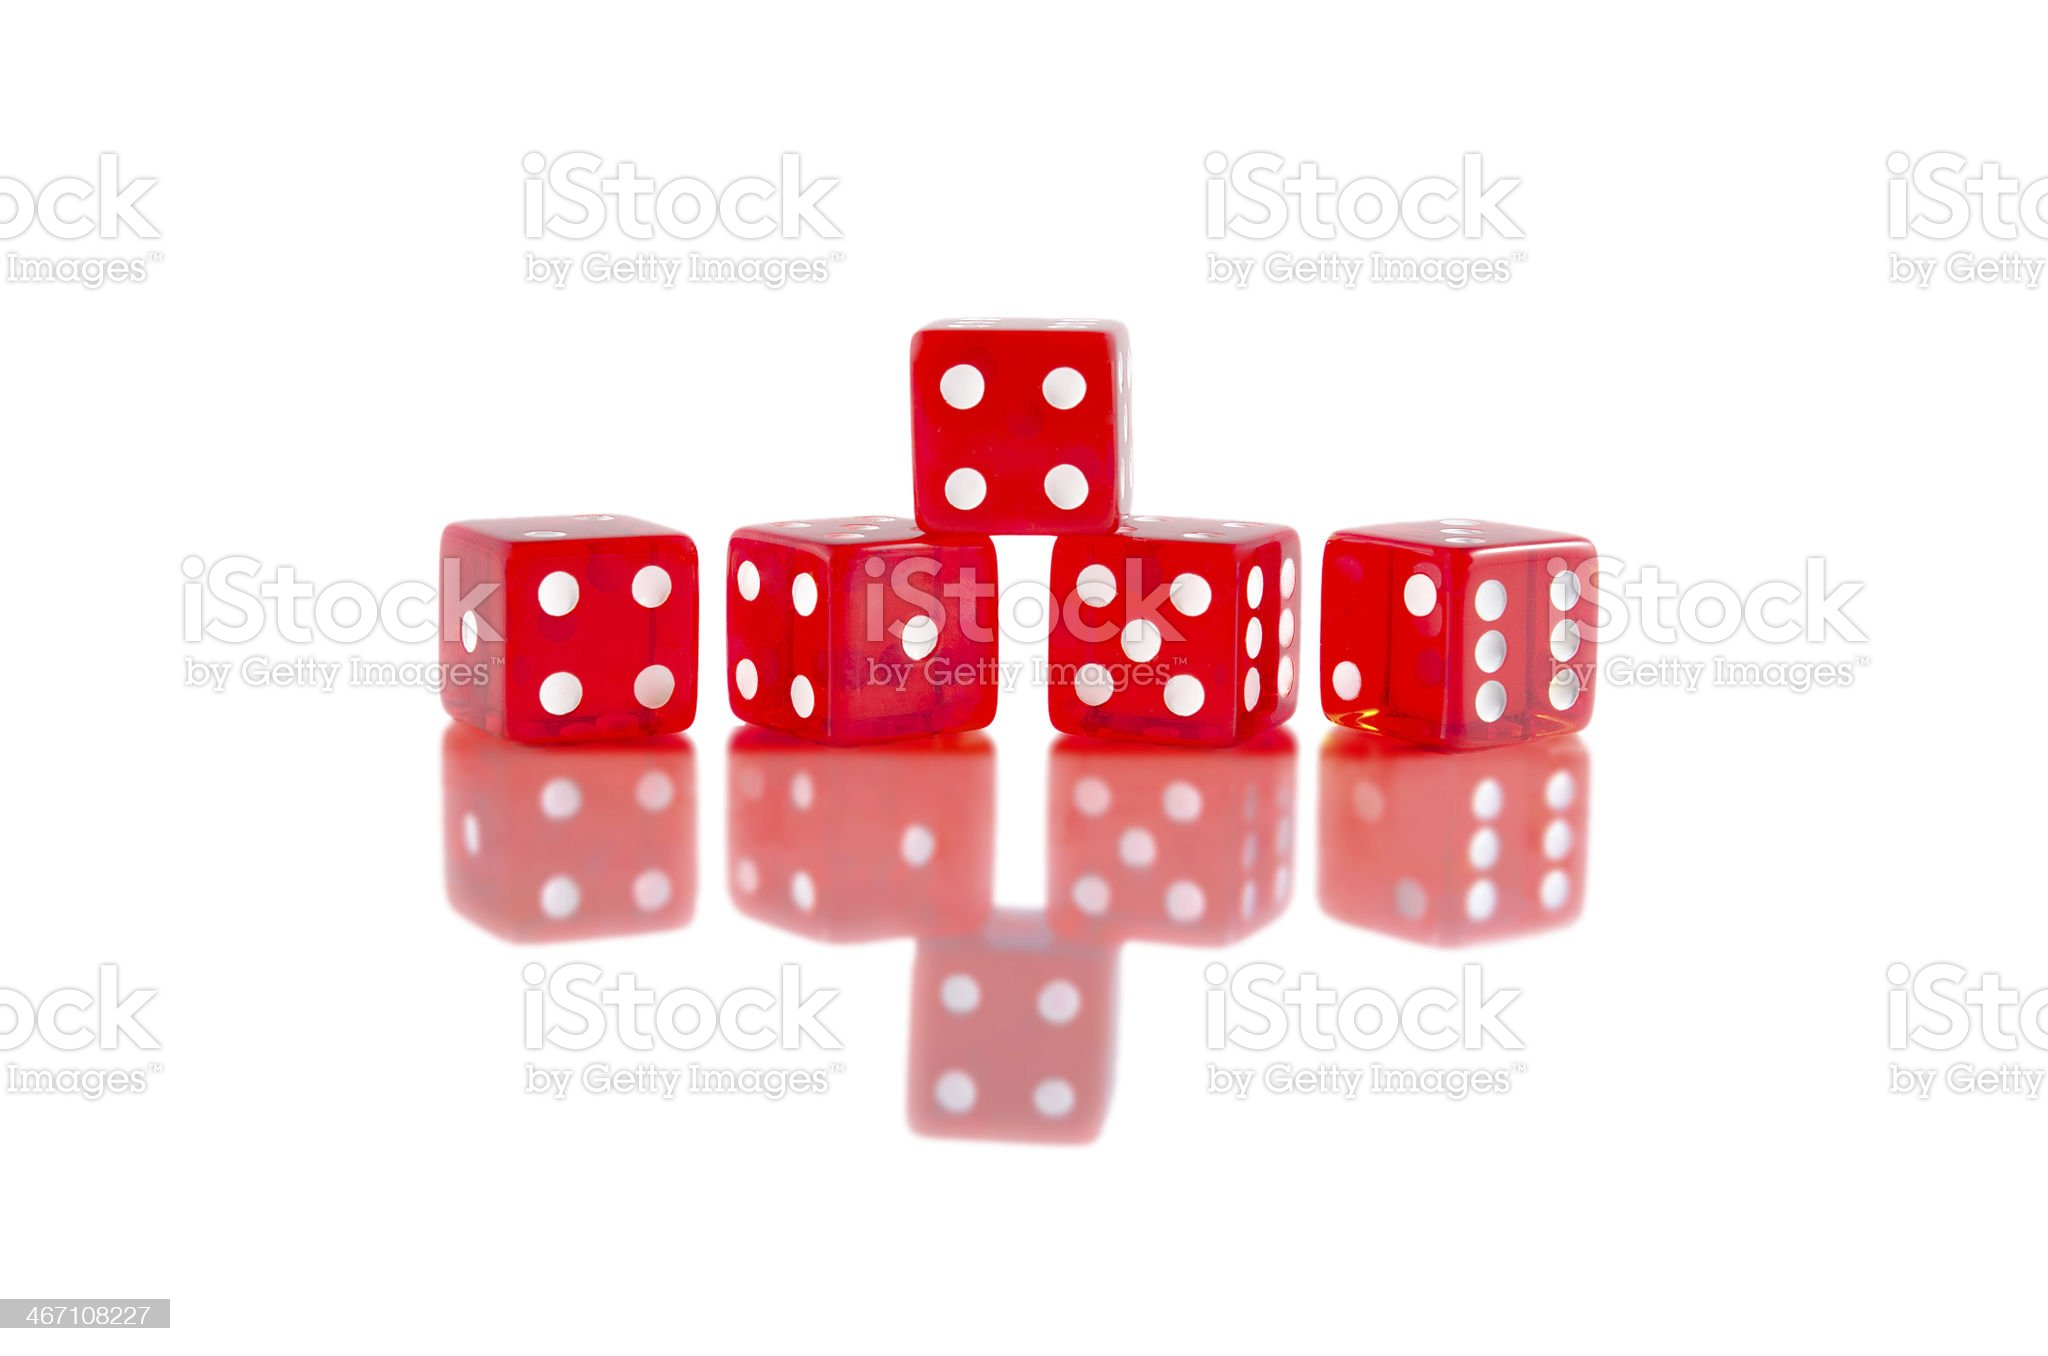 Red dice on white isolated background royalty-free stock photo